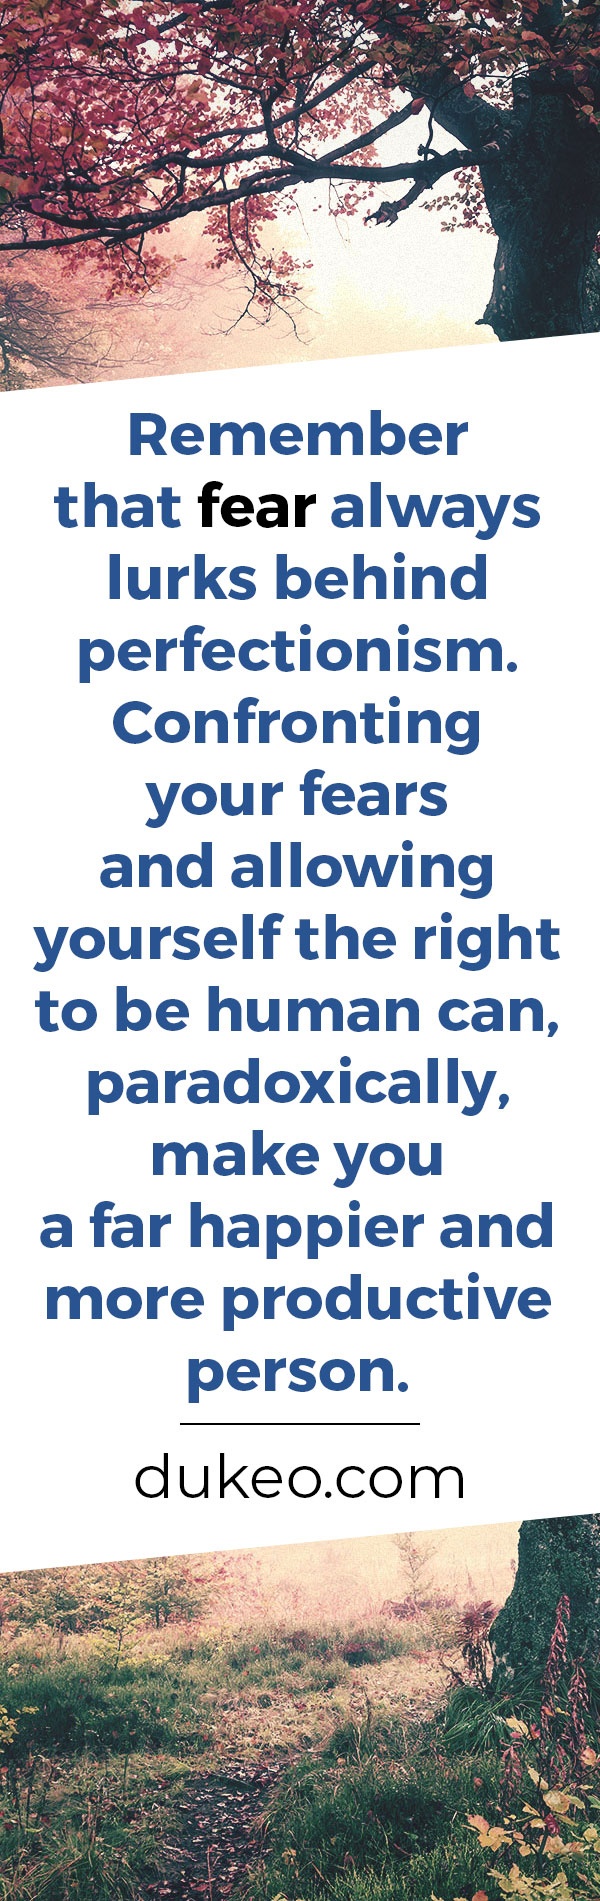 Remember that fear always lurks behind perfectionism. Confronting your fears and allowing yourself the right to be human can, paradoxically, make you a far happier and more productive person.